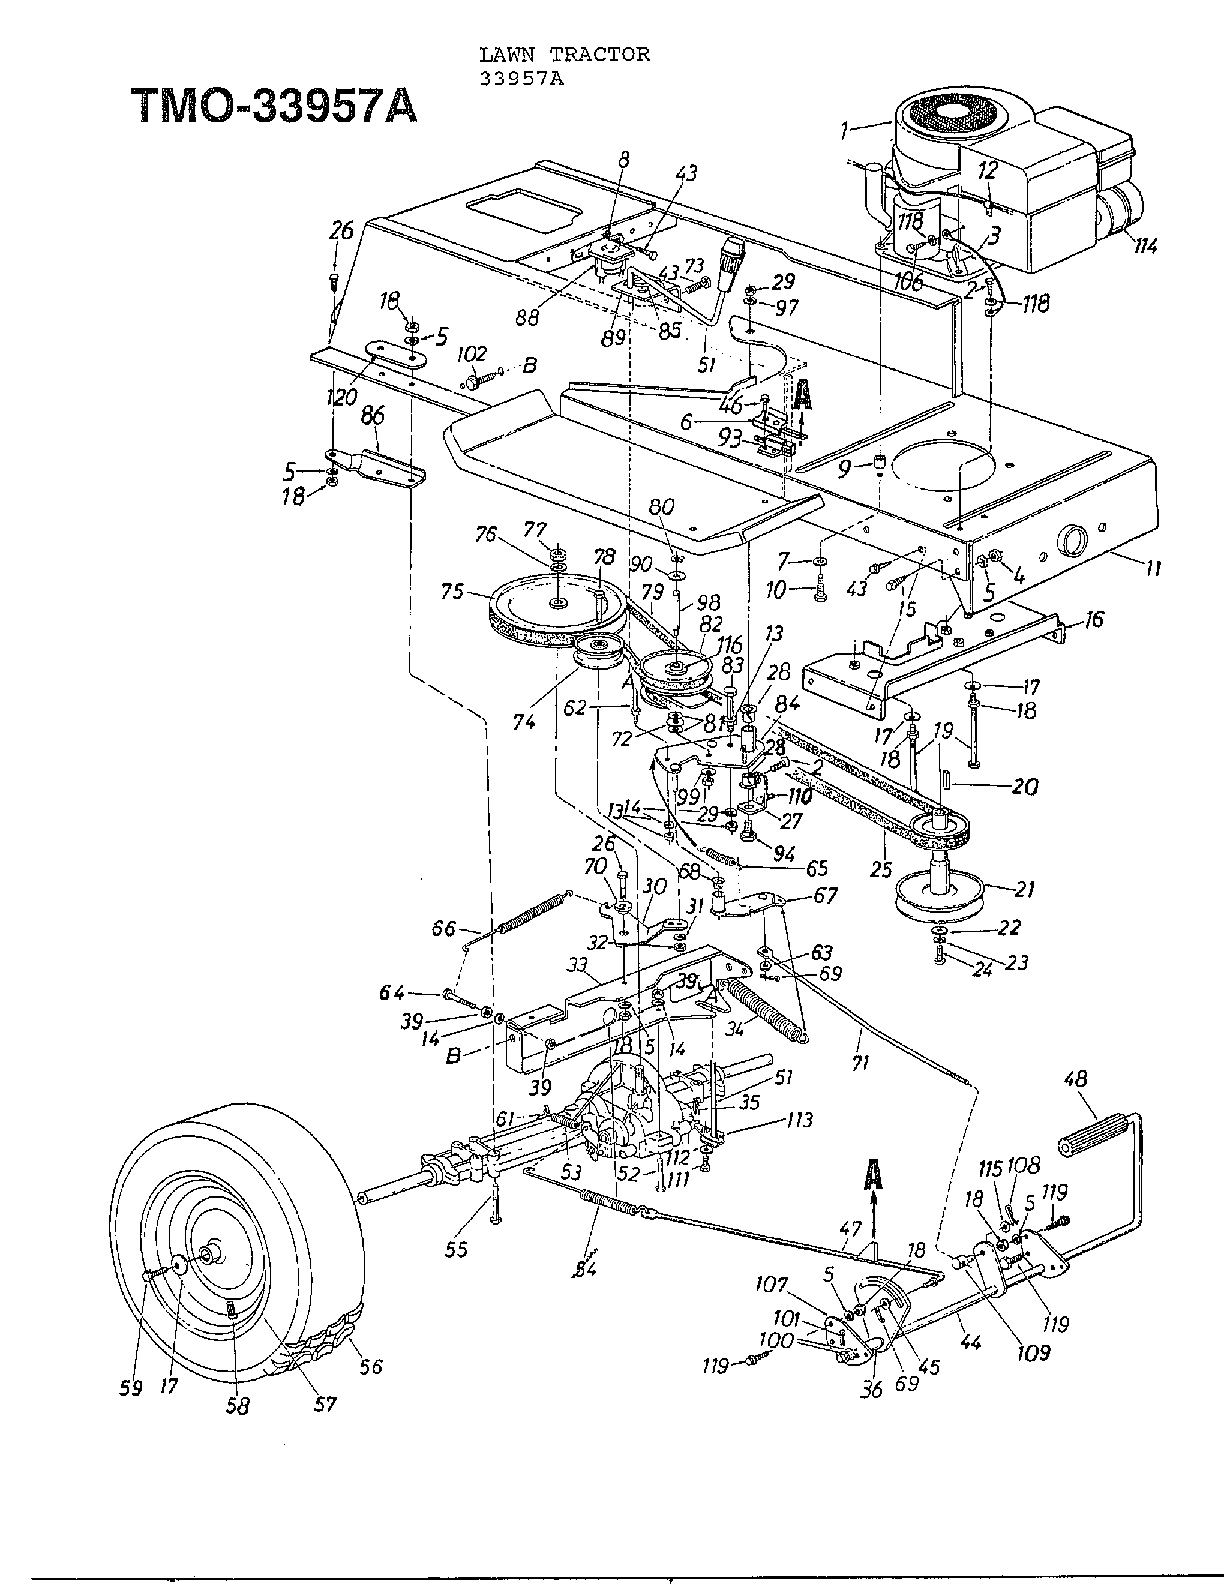 Mtd model 33944A lawn, tractor genuine parts